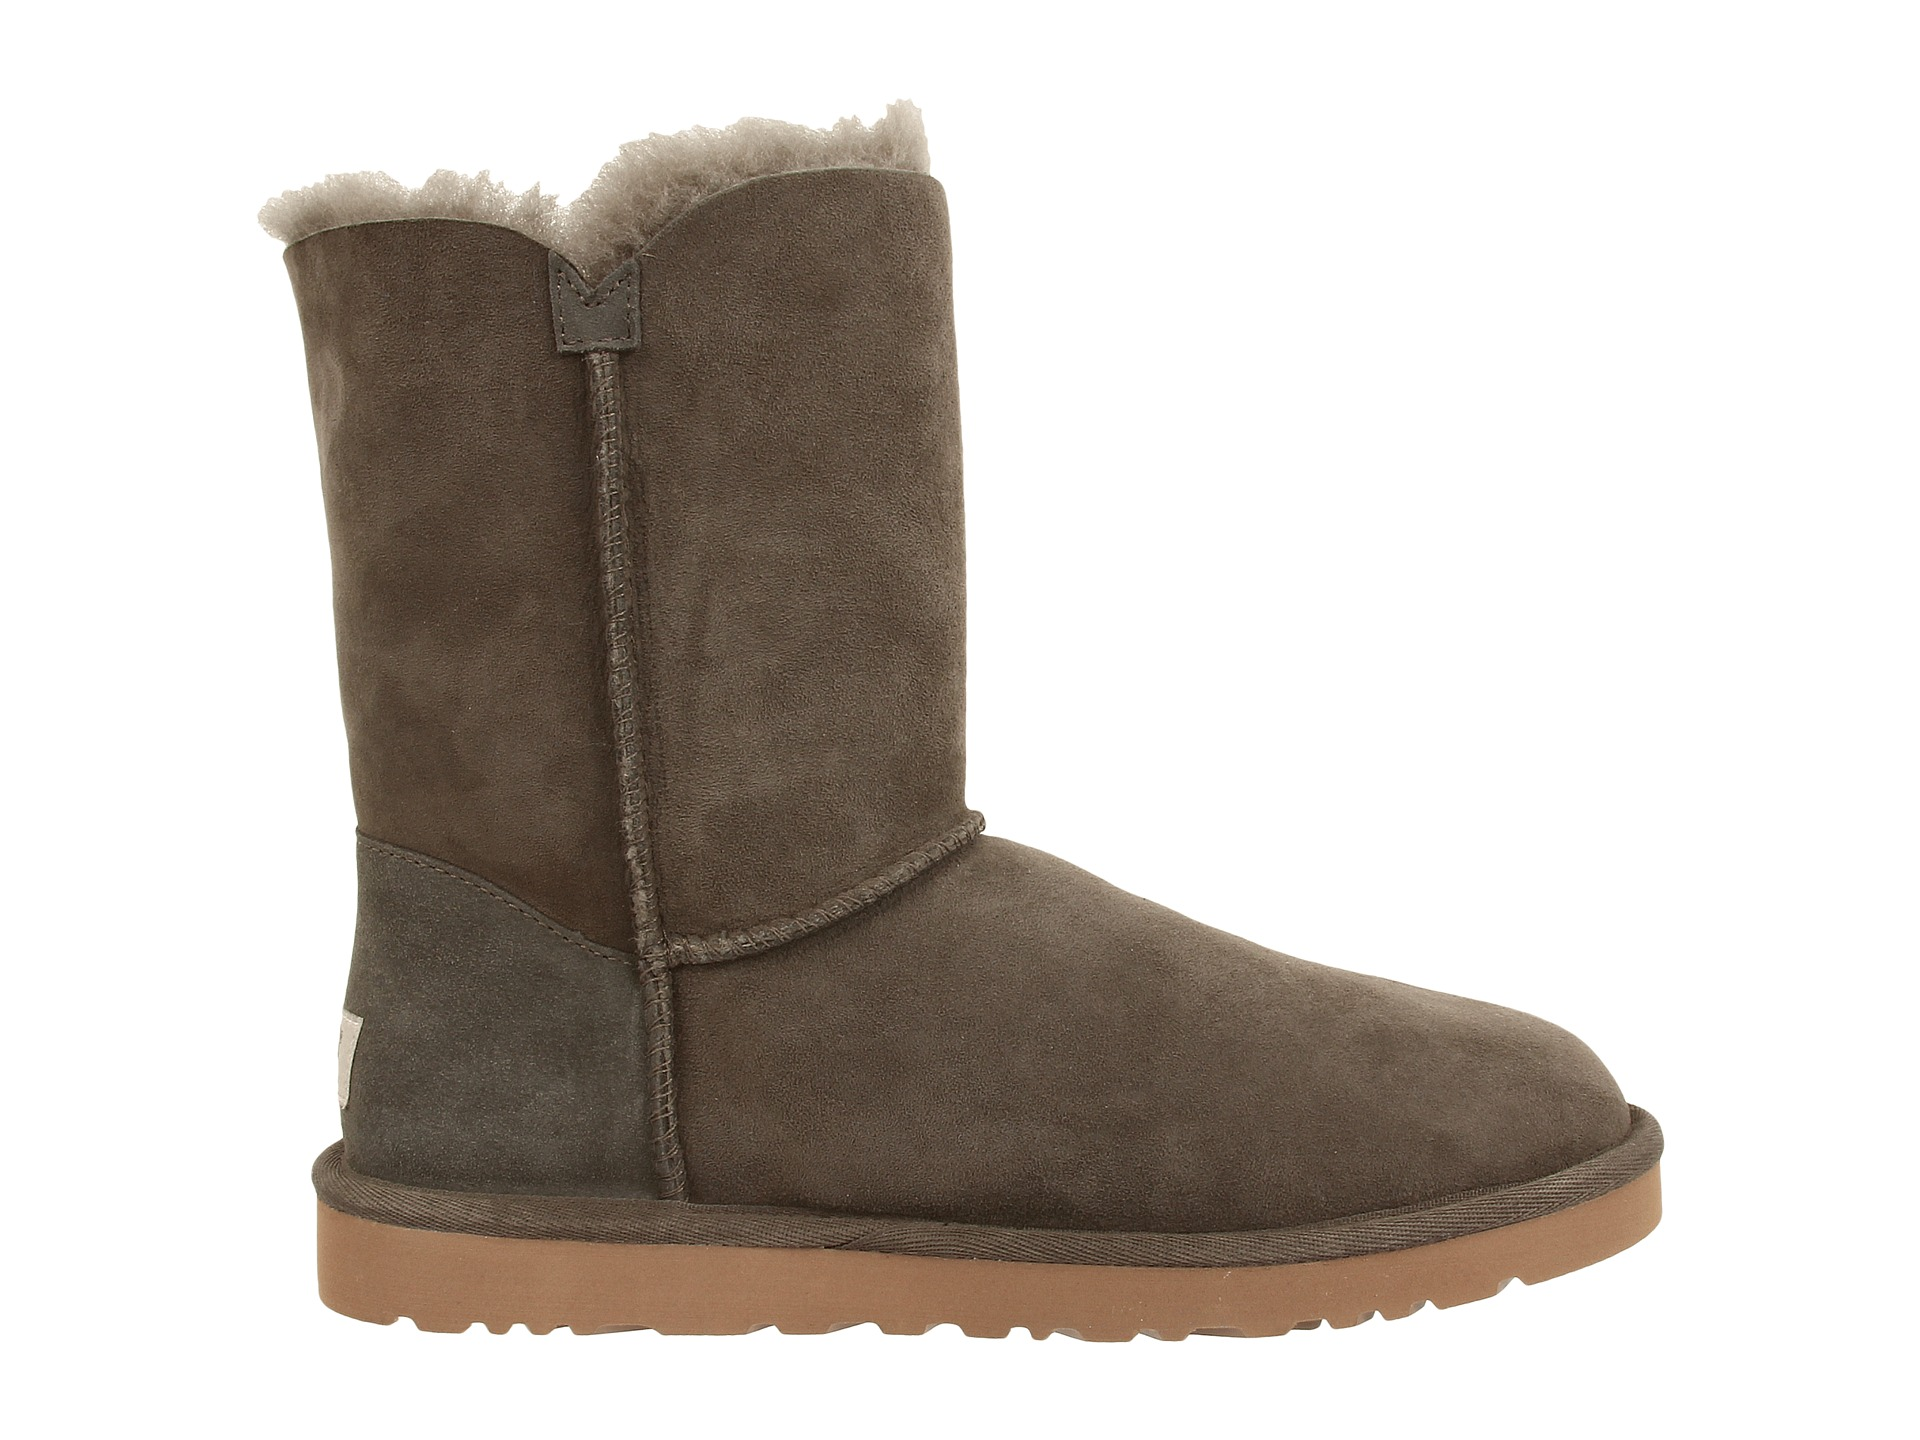 ugg boots no half sizes